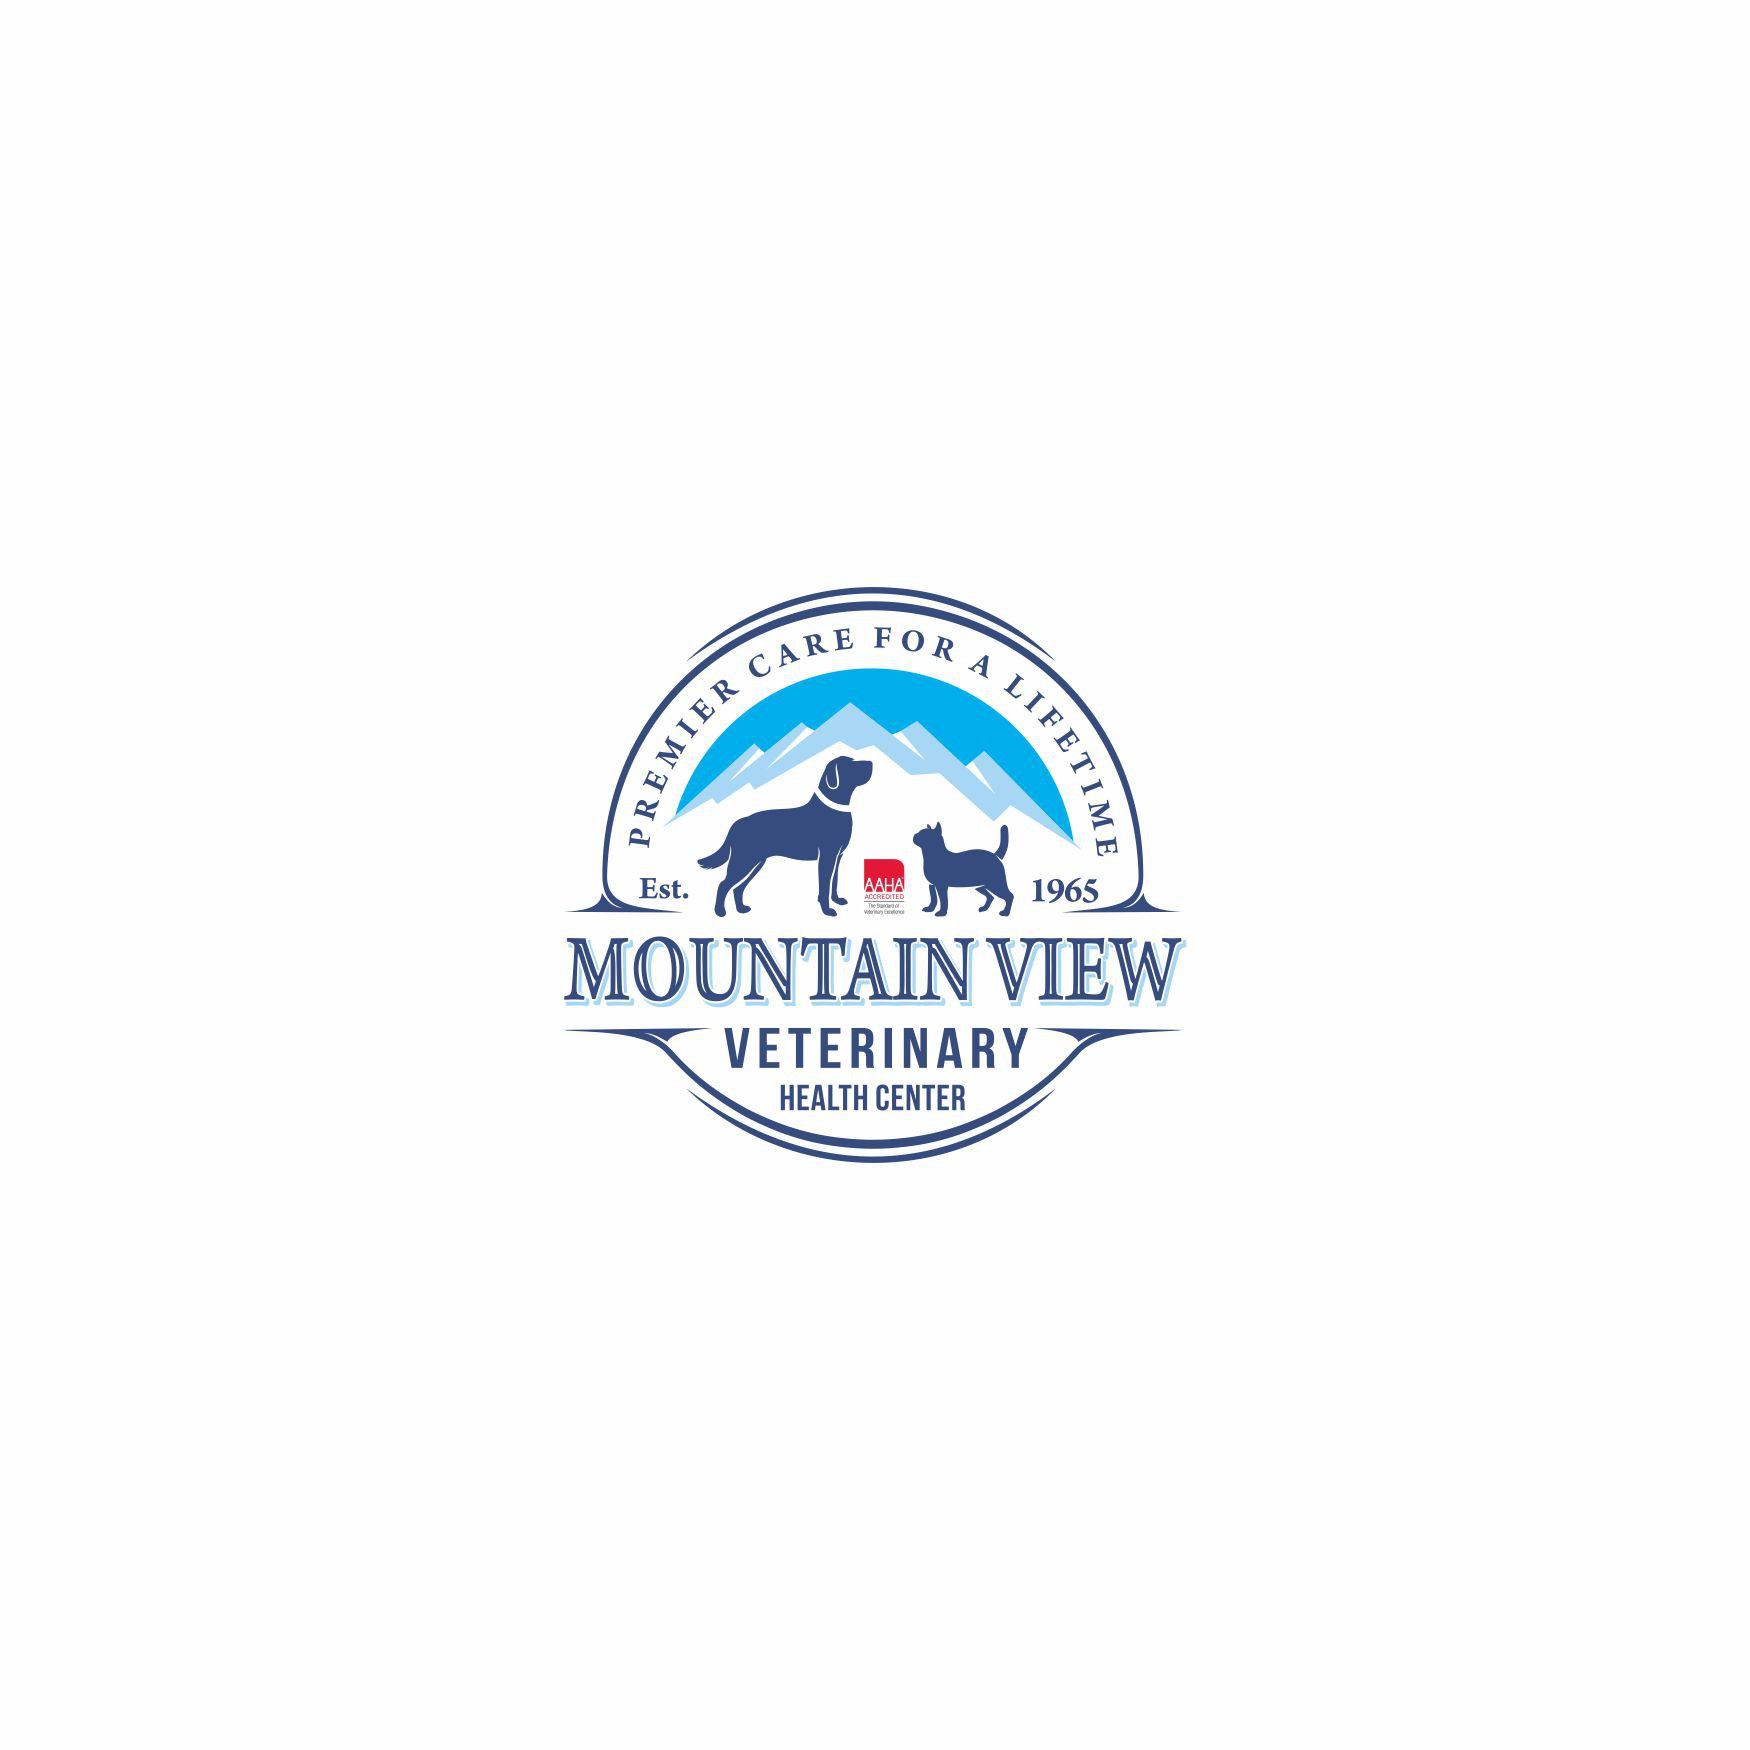 Established veterinary hospital needs sophisticated and caring new logo